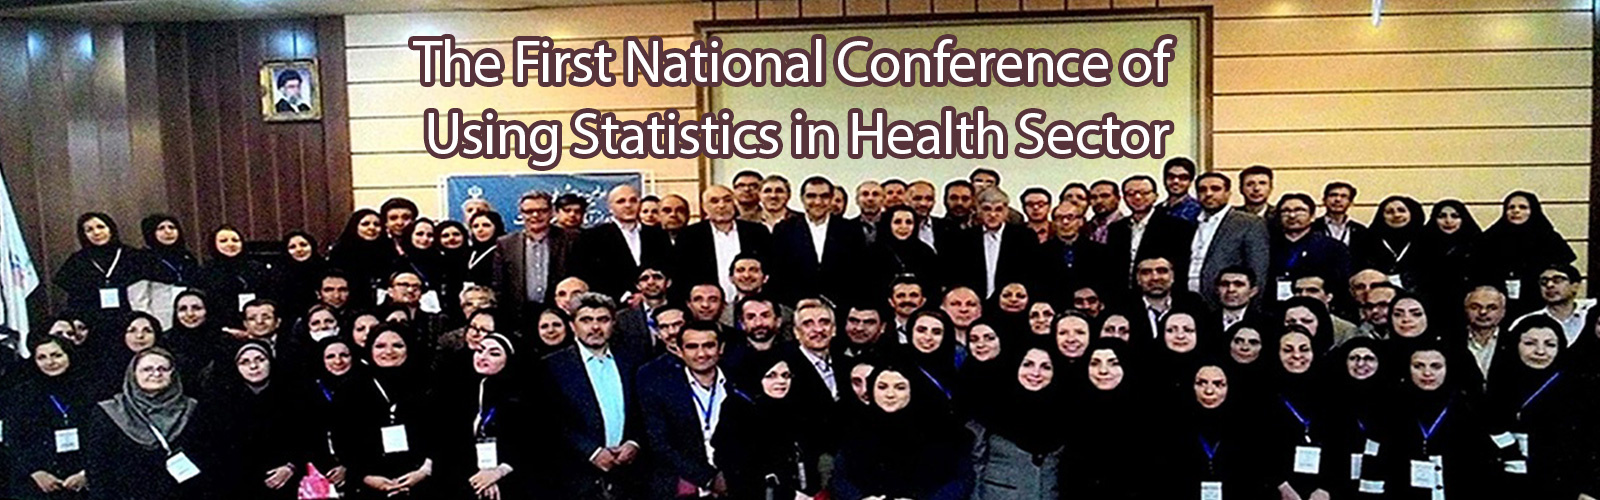 The First National Conference of using Statistics in Health sector